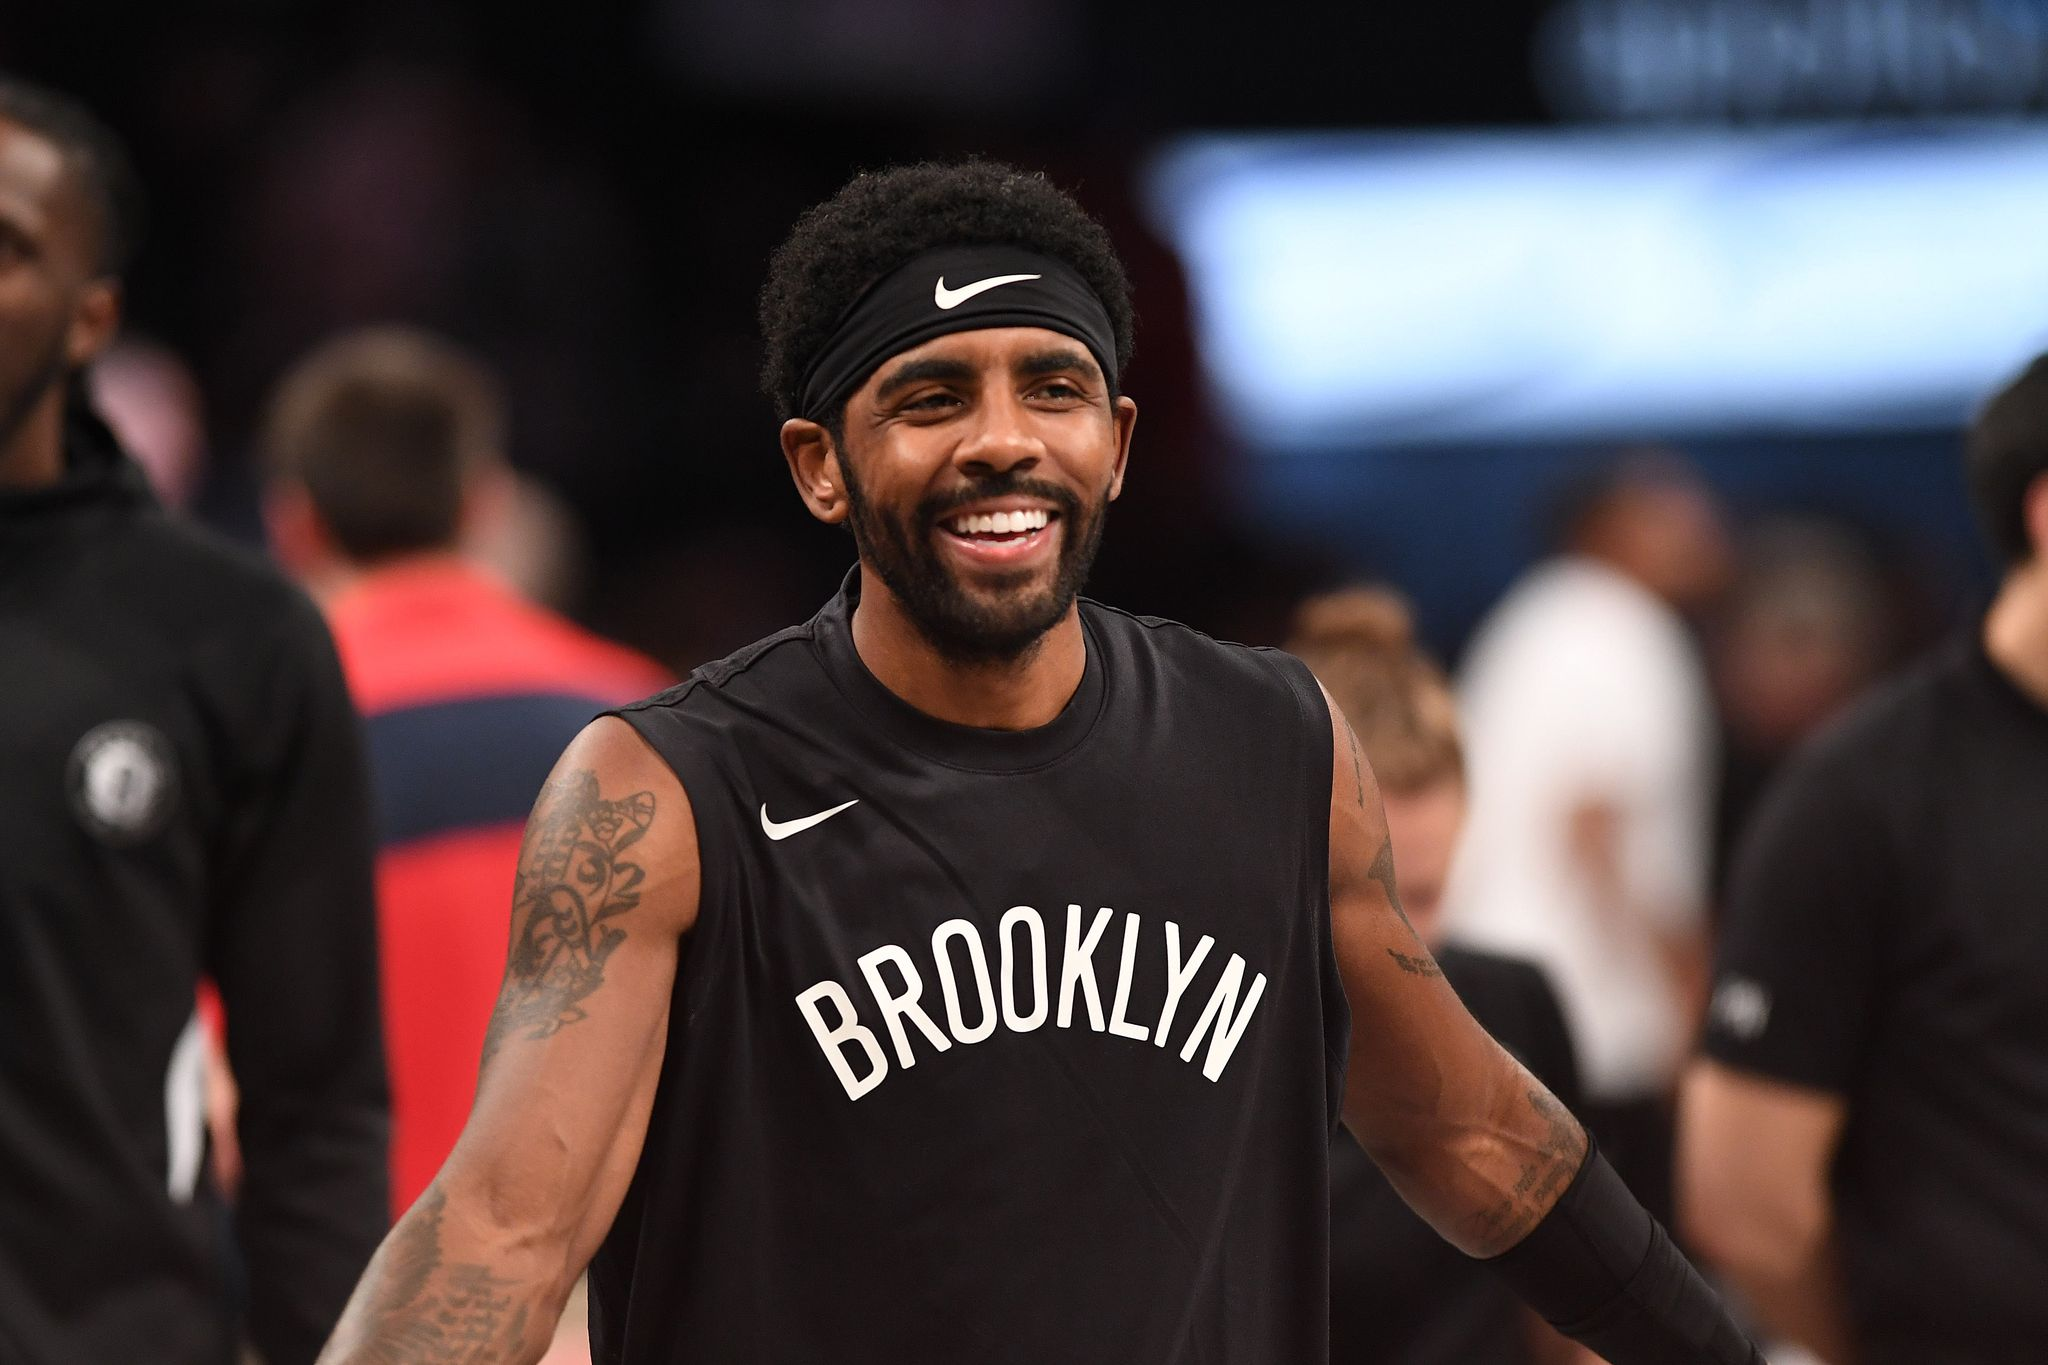 Kyrie Irving at Barclays Center in November 2019 in New York City | Source: Getty Images